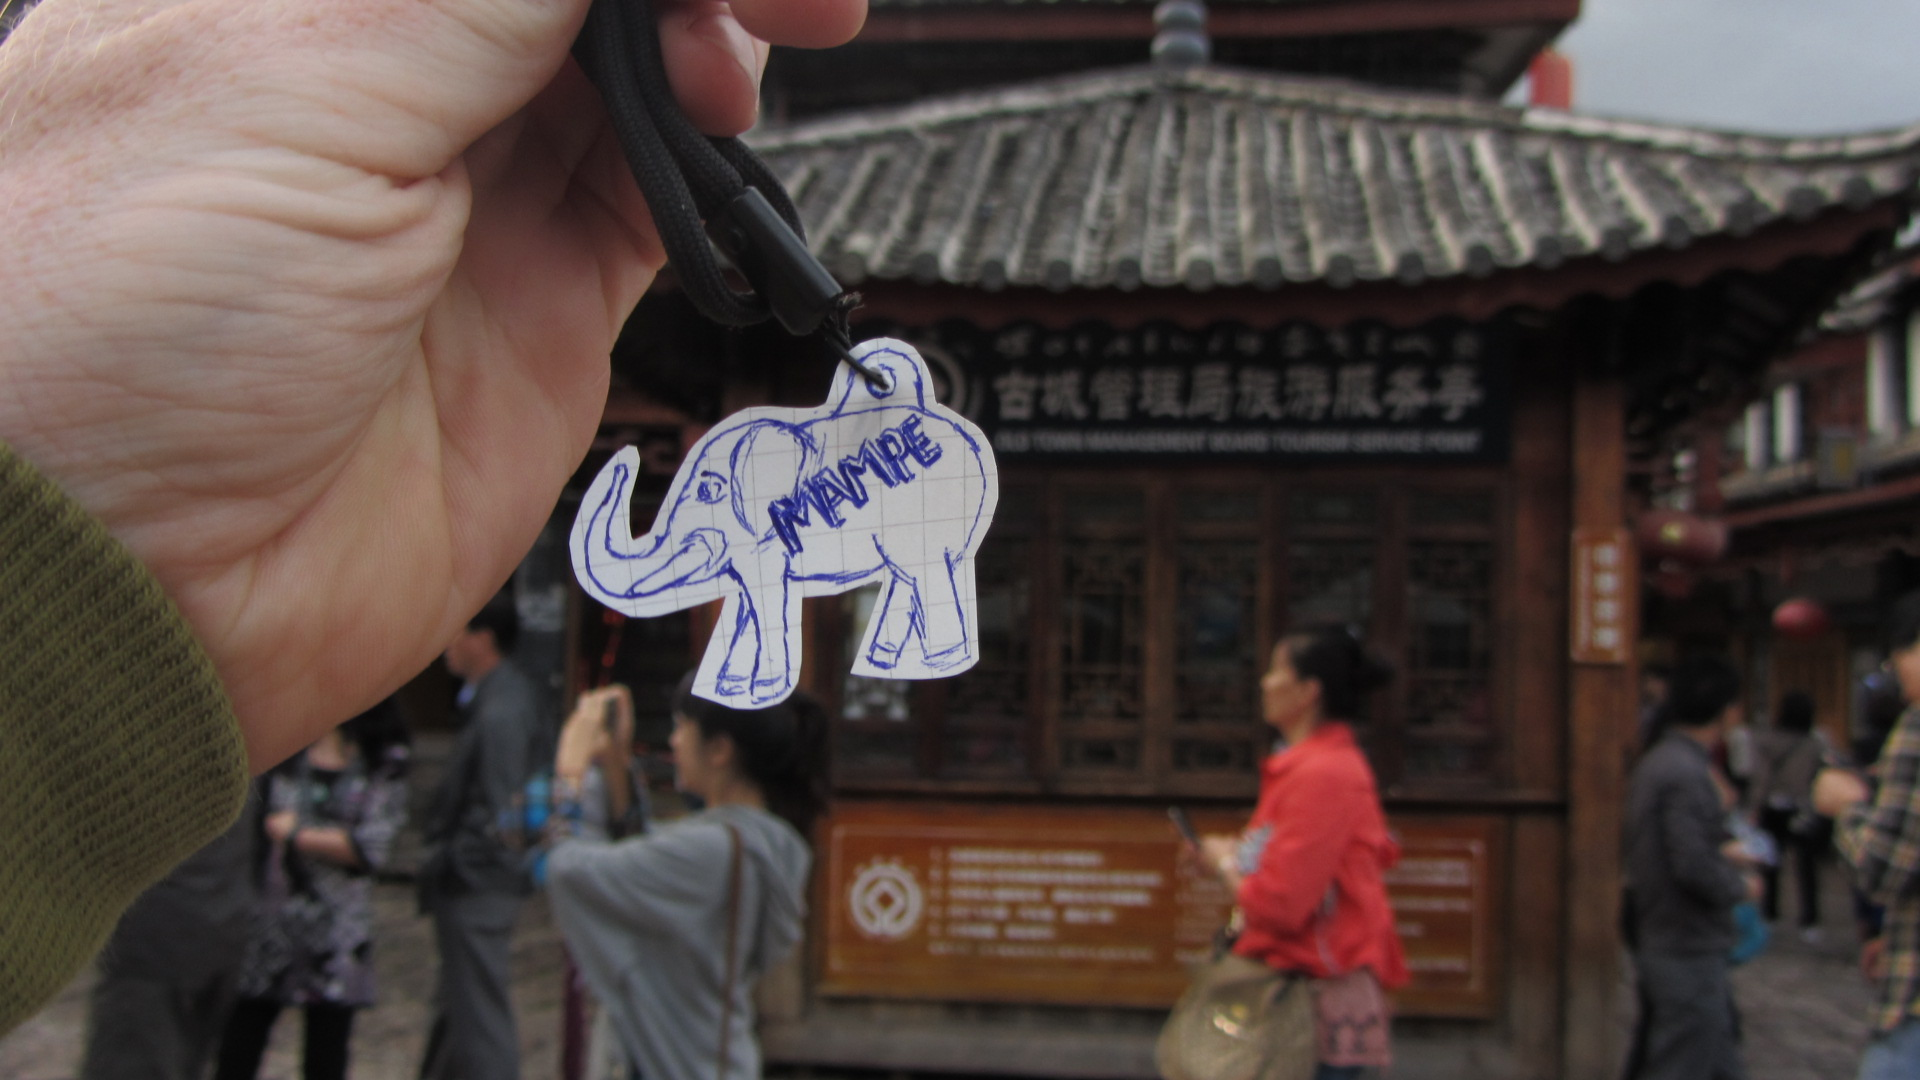 Unterwegs beim Sightseeing: Mampfré in China